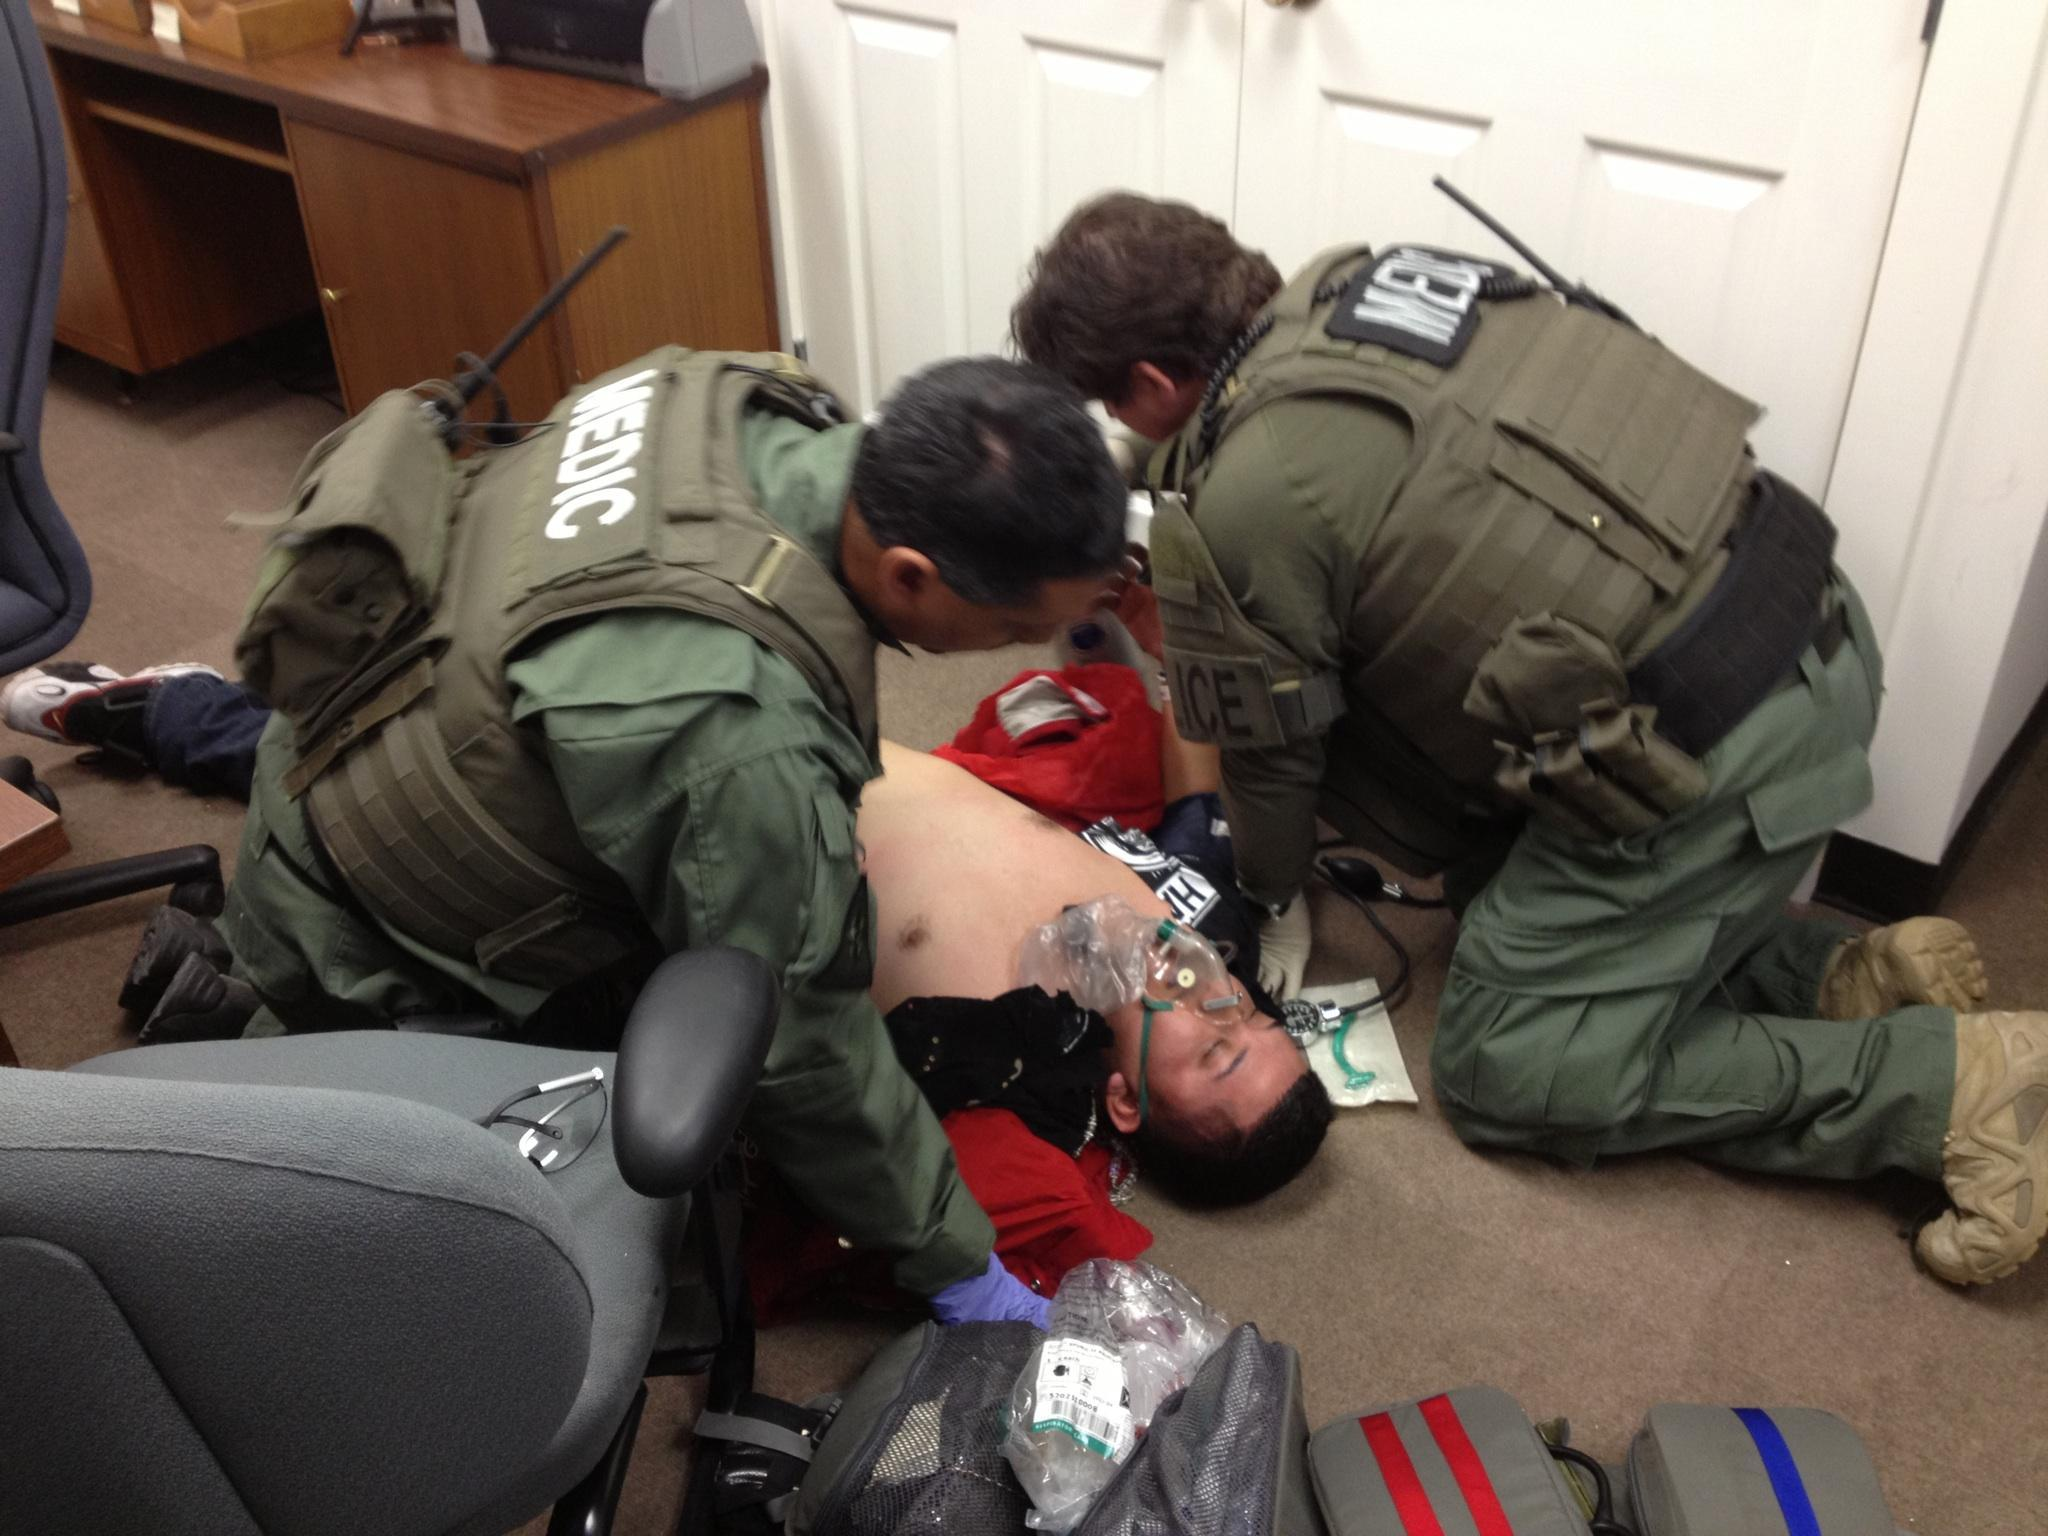 atf medics treat an injured suspect during a special response team arrest operation